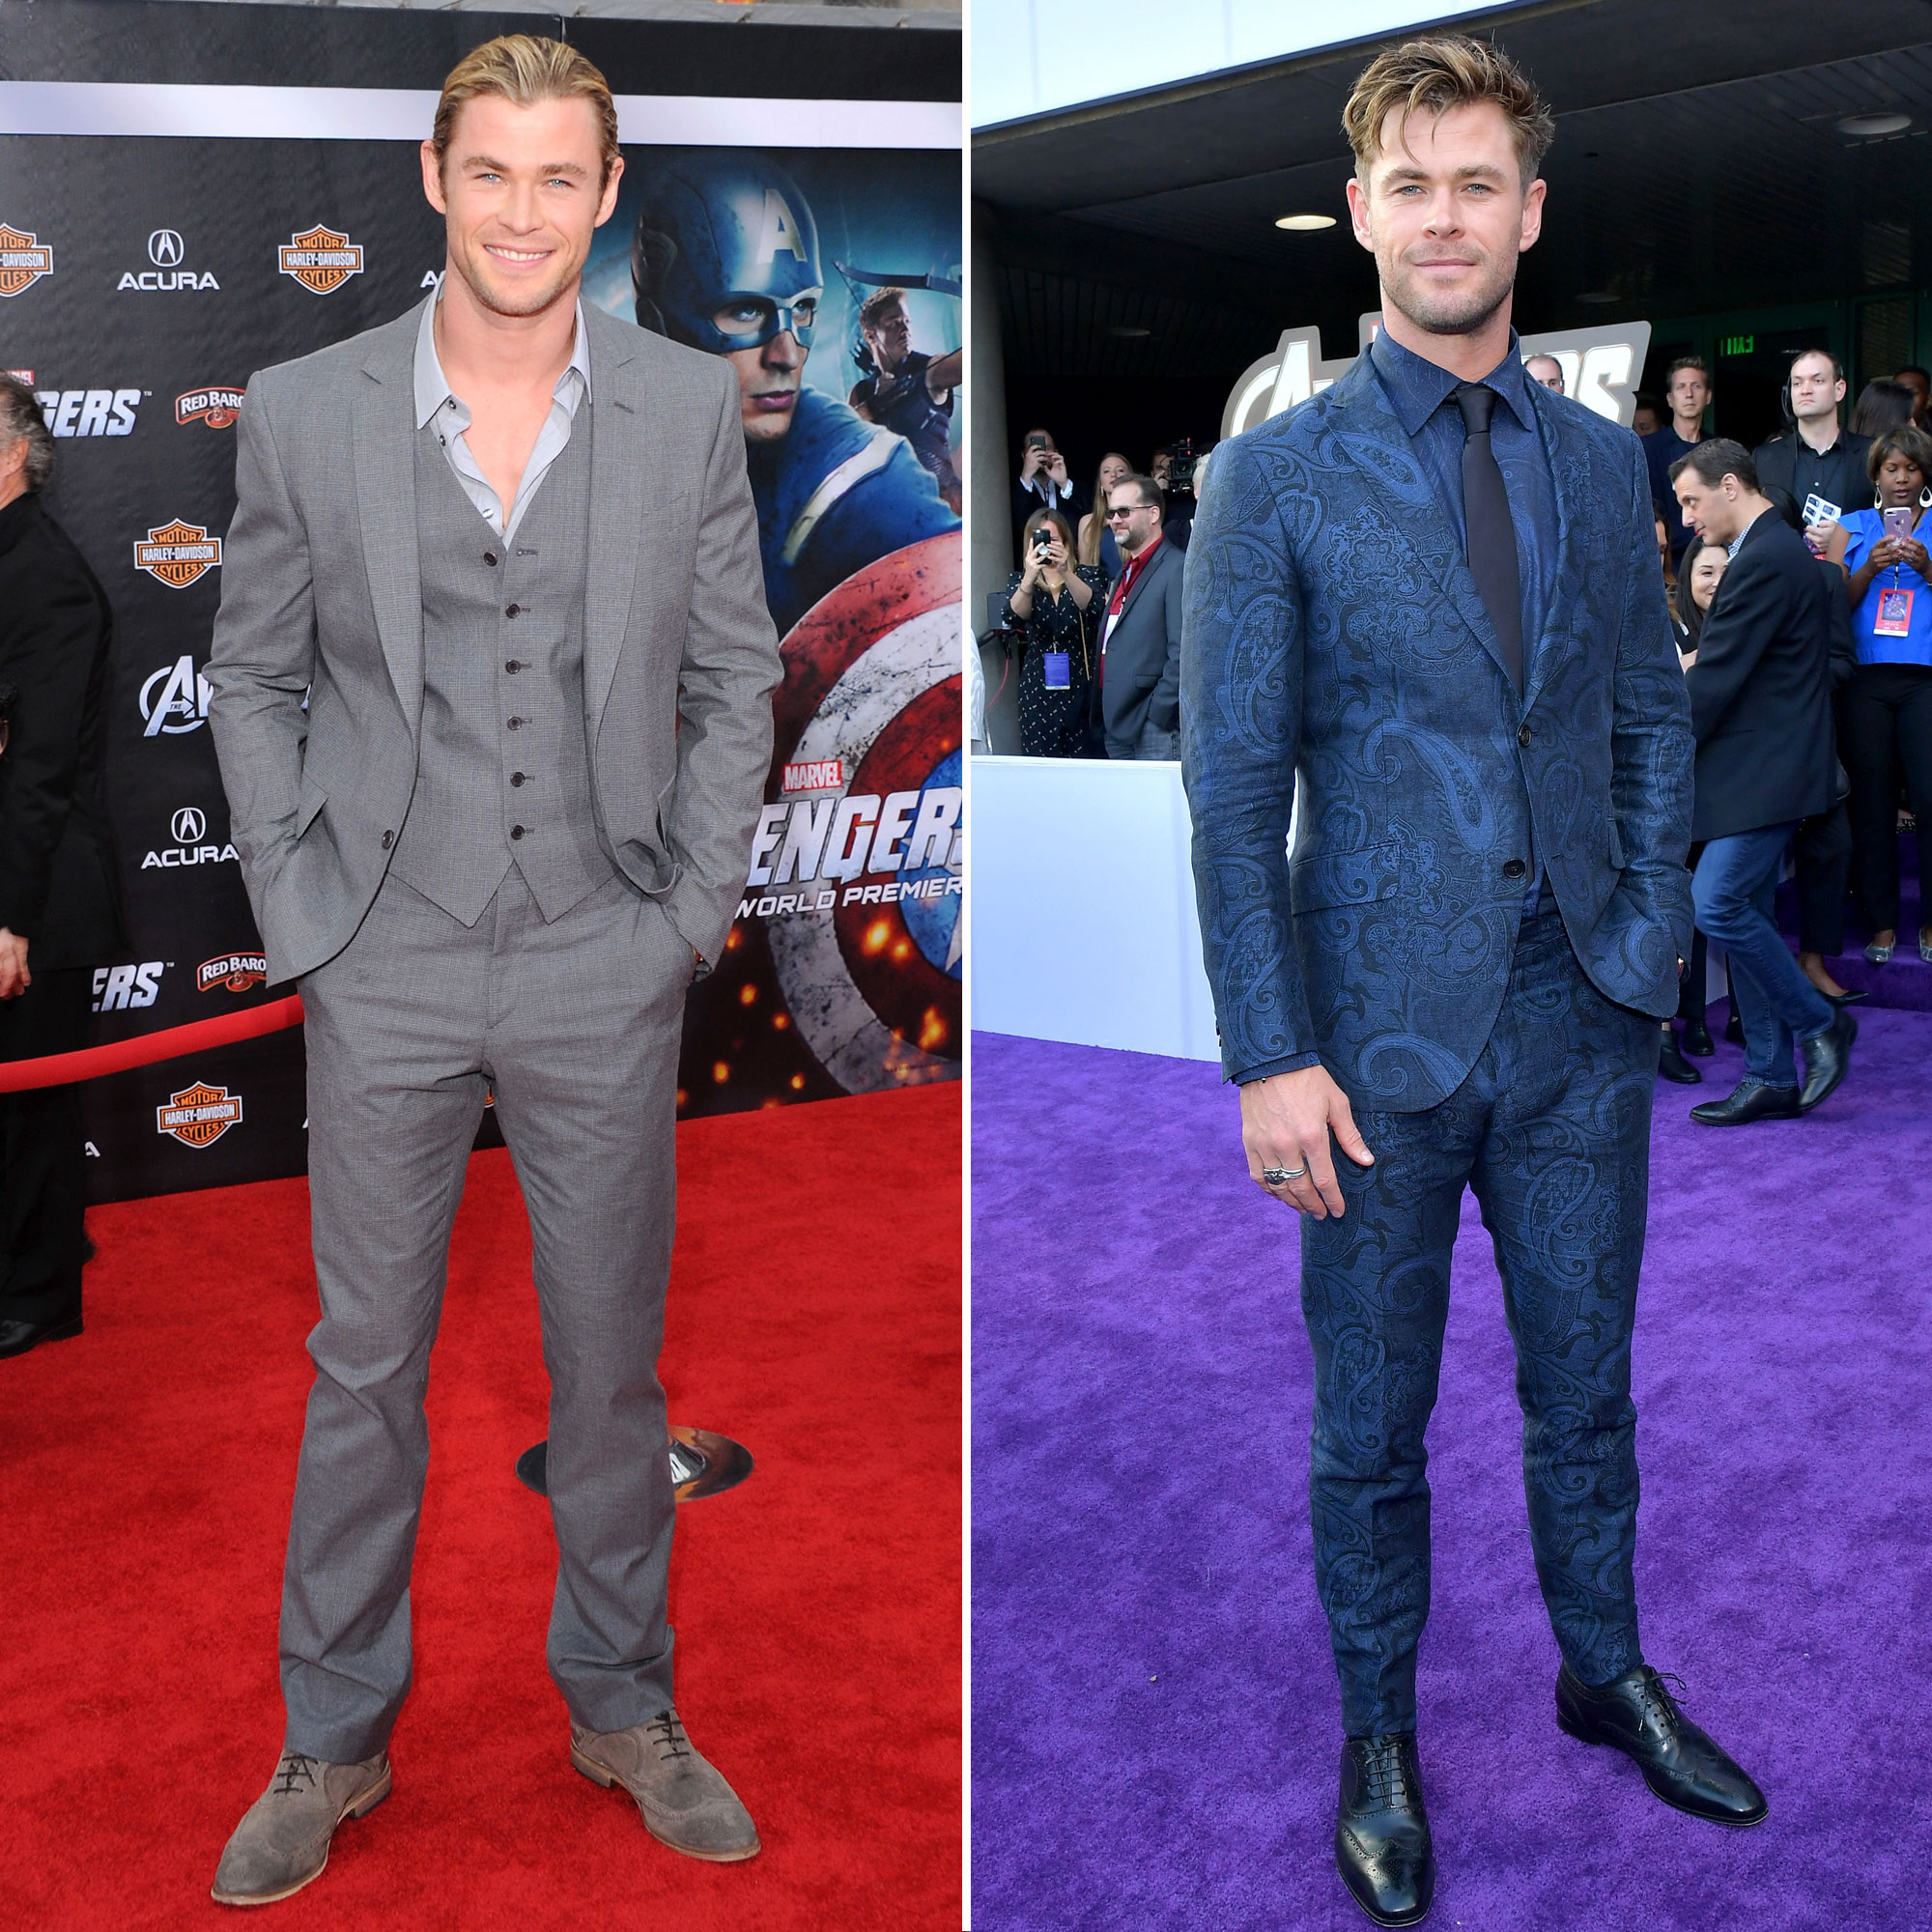 """Chris Hemsworth Avengers Premiere First Super Red Carpet to Their Last - The other Chris, who appeared to forget the """"t"""" in his name while leaving his hand imprint outside of Hollywood's TCL Chinese Theatre on April 24, already played Thor prior to starring in The Avengers . He seems to have stepped up his style game with some added flair since 2012, however, replacing his play gray suit and matching kicks for a blue paisley tux and shiny black dress shoes."""